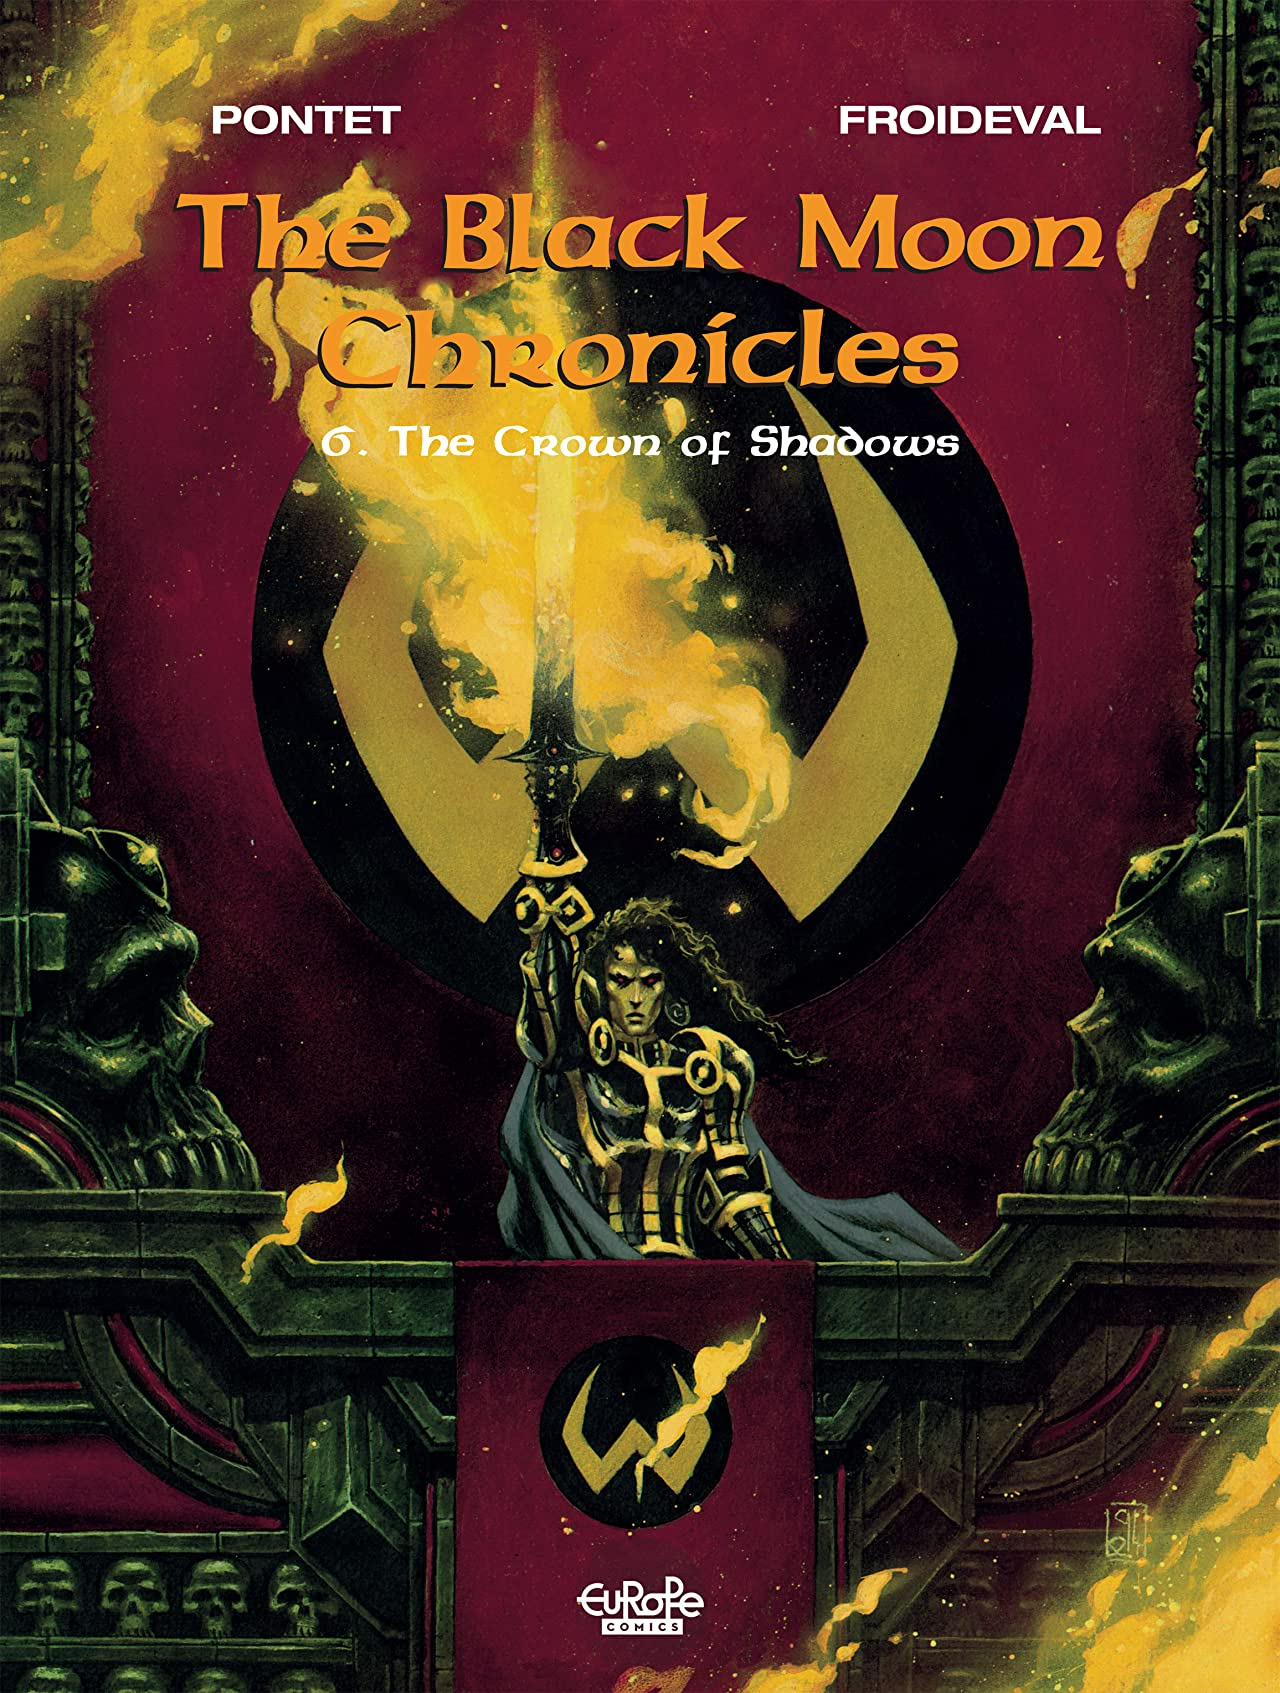 The Black Moon Chronicles Vol. 6: The Crown of Shadows